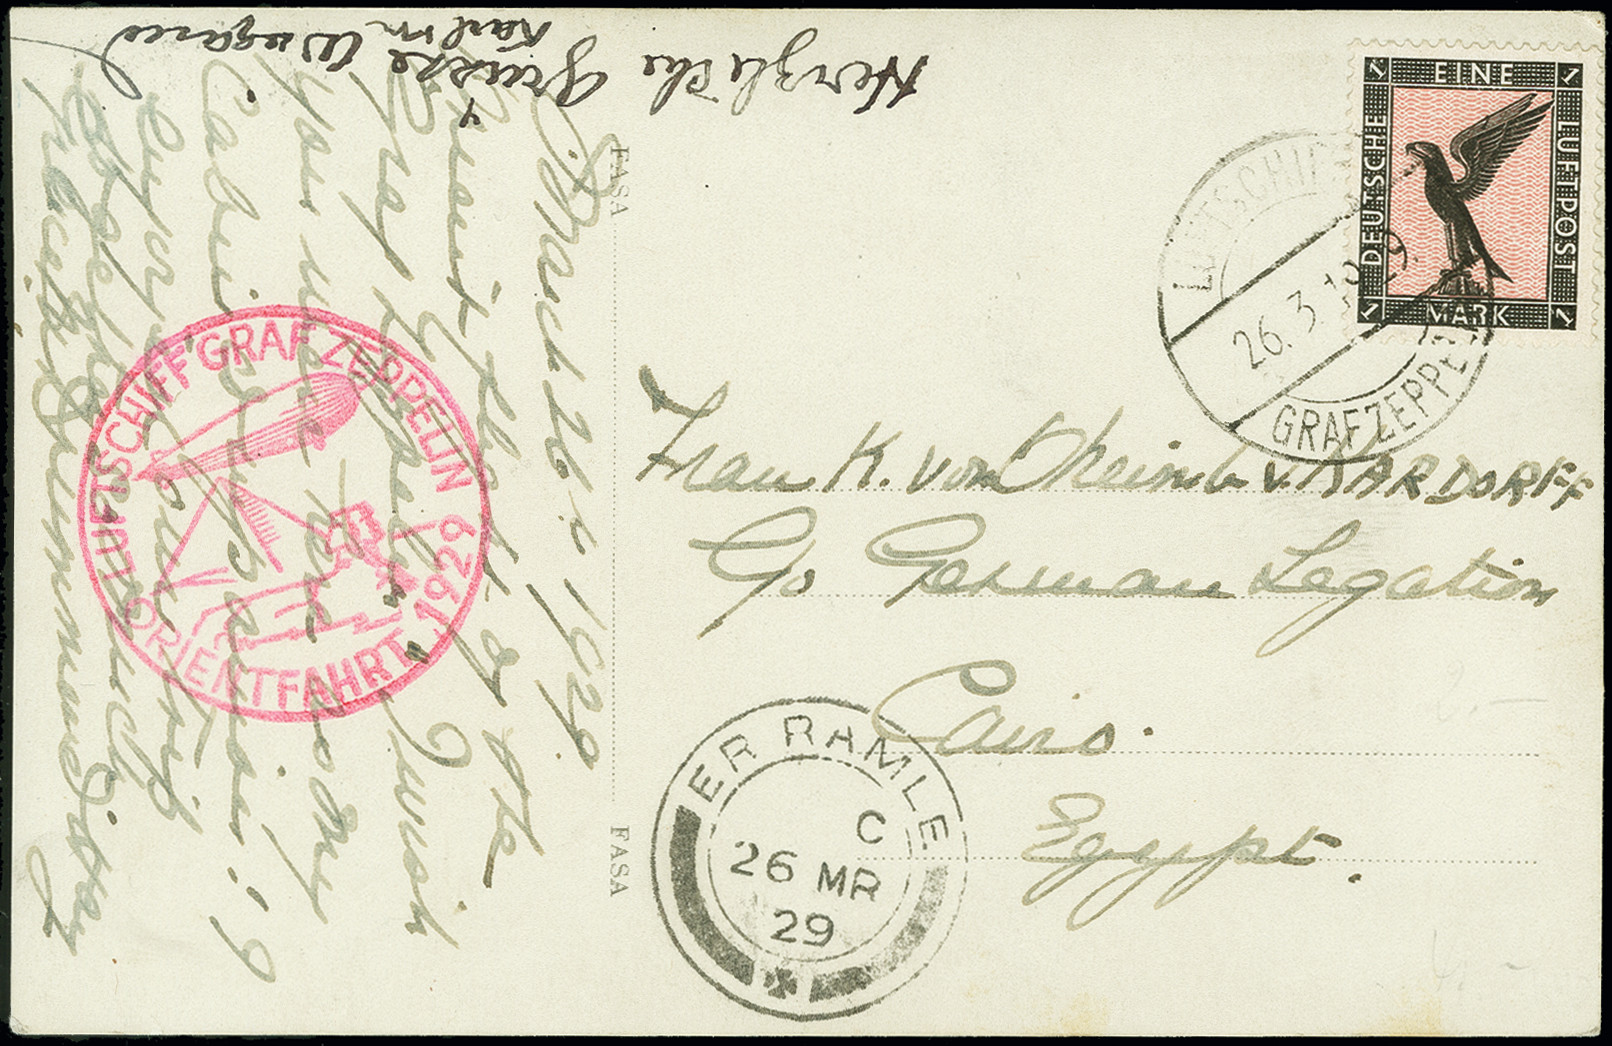 Lot 1165 - airmail zeppelin -  Heinrich Koehler Auktionen Auction #368- Day 2